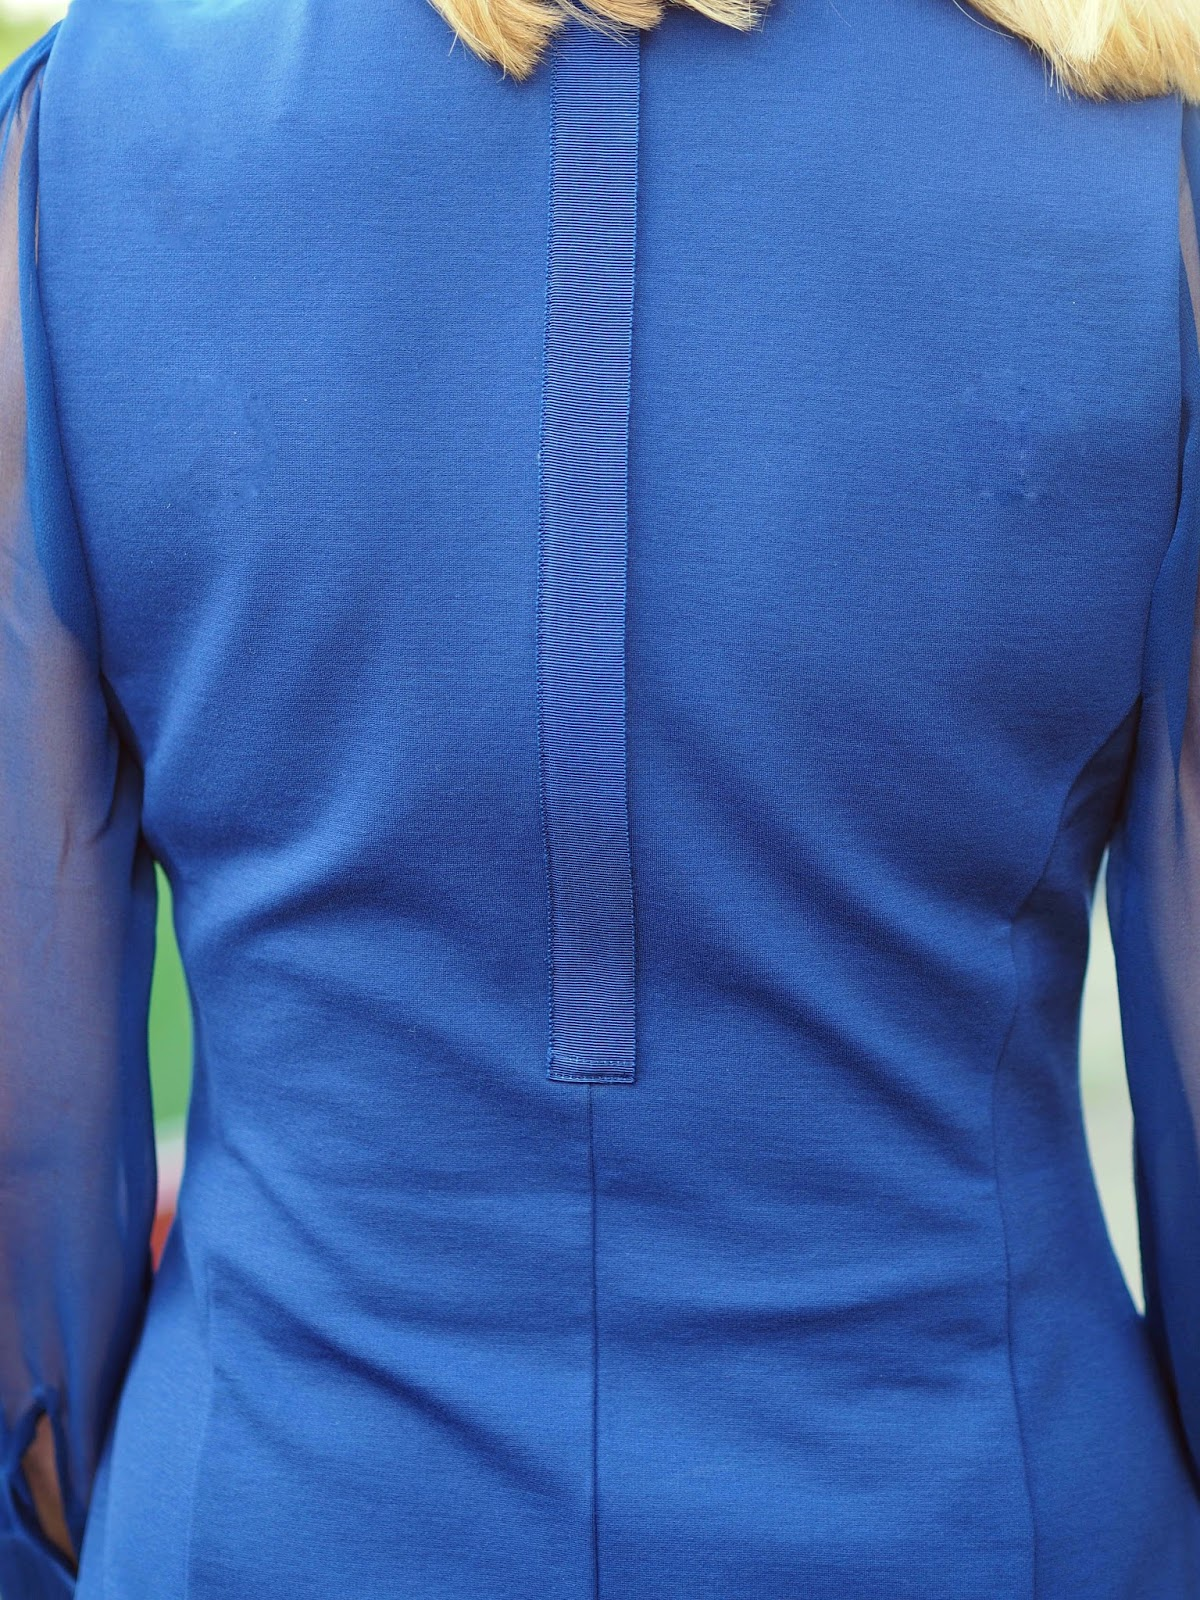 Winser London miracle fitted dress moonlight blue, over 40 style